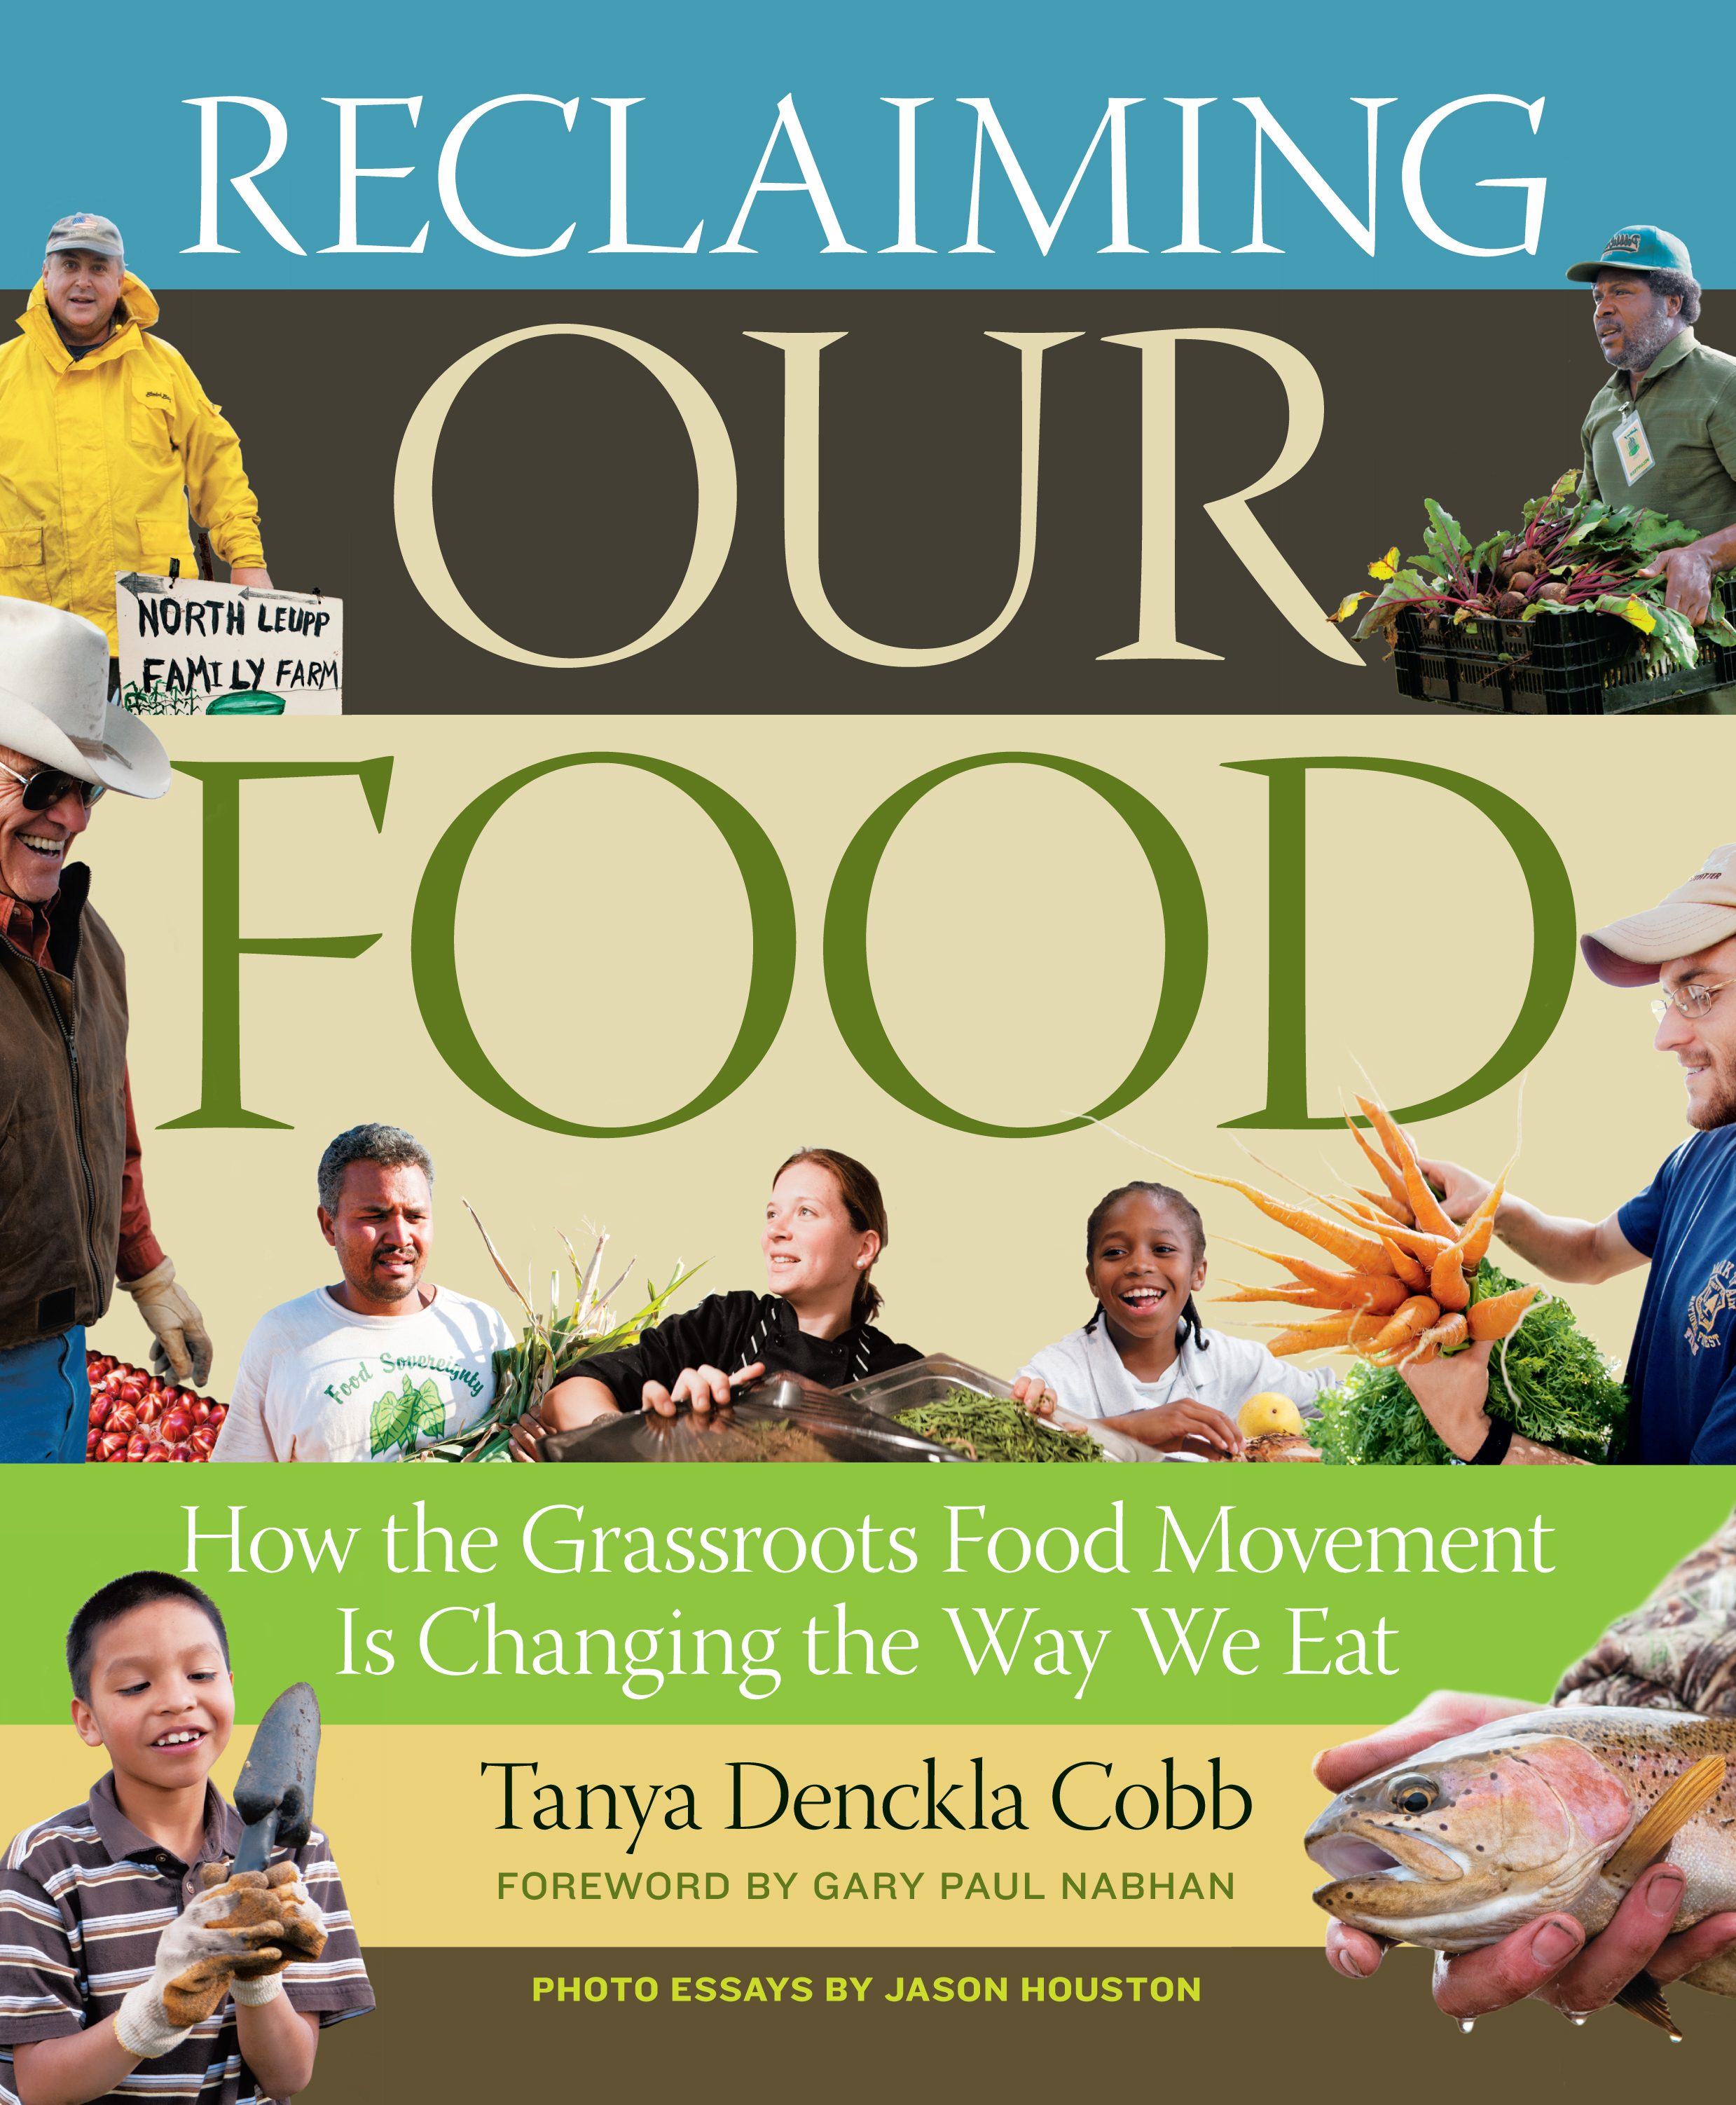 Reclaiming Our Food How the Grassroots Food Movement Is Changing the Way We Eat - Tanya Denckla Cobb